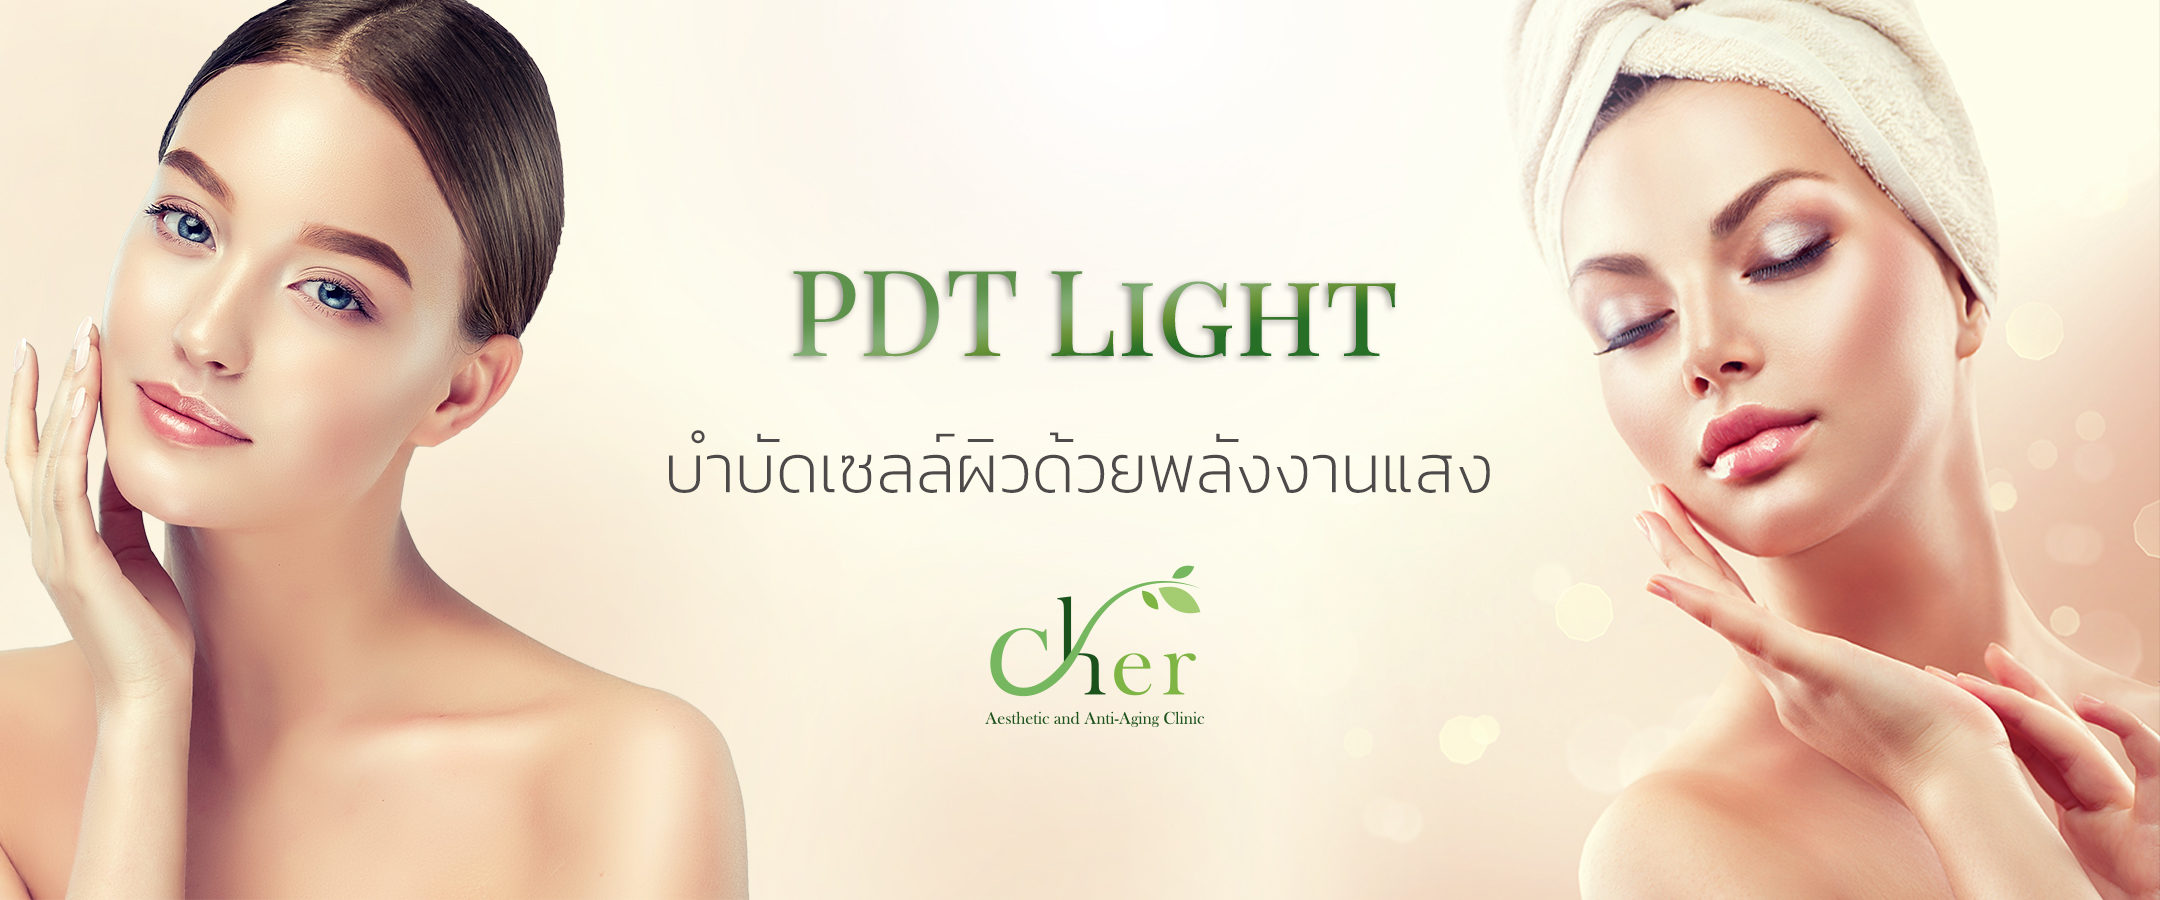 PDI light L.jpg